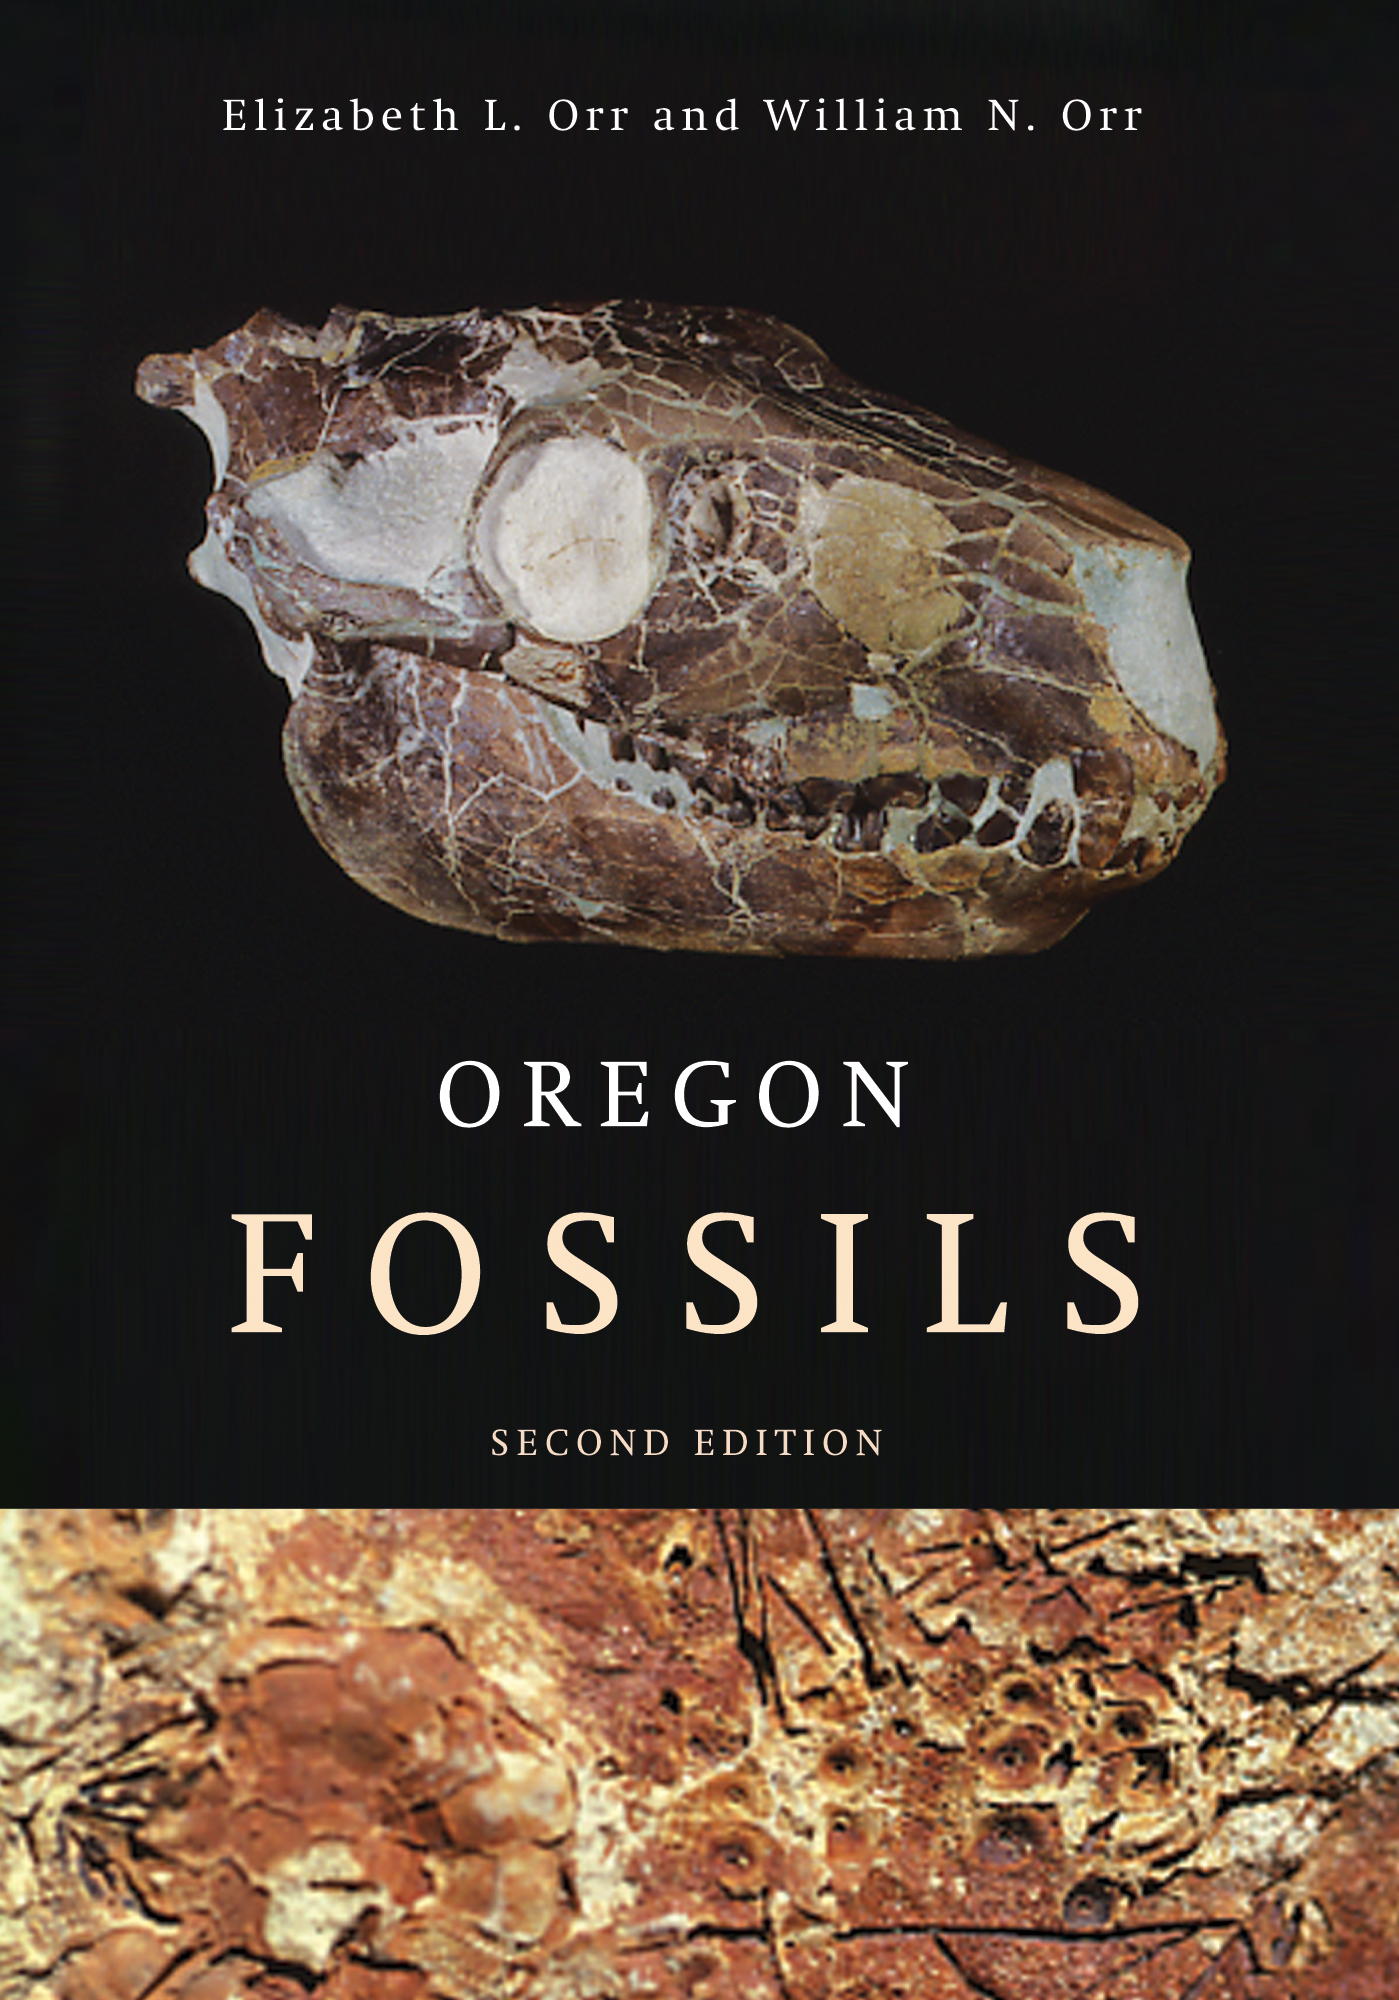 Photo shows the NEW Second Edition of Oregon Fossils, by Elizabeth L. Orr and William N. Orr ISBN 978-0-87071-573-0 a new revised and expanded guide for Oregon fossils - Hot off the Press!  To ensure availibility of this item, order as early as possible. Click here to learn more about the largest selection of Regional Books and Maps for Oregon from FACETS book shelf!